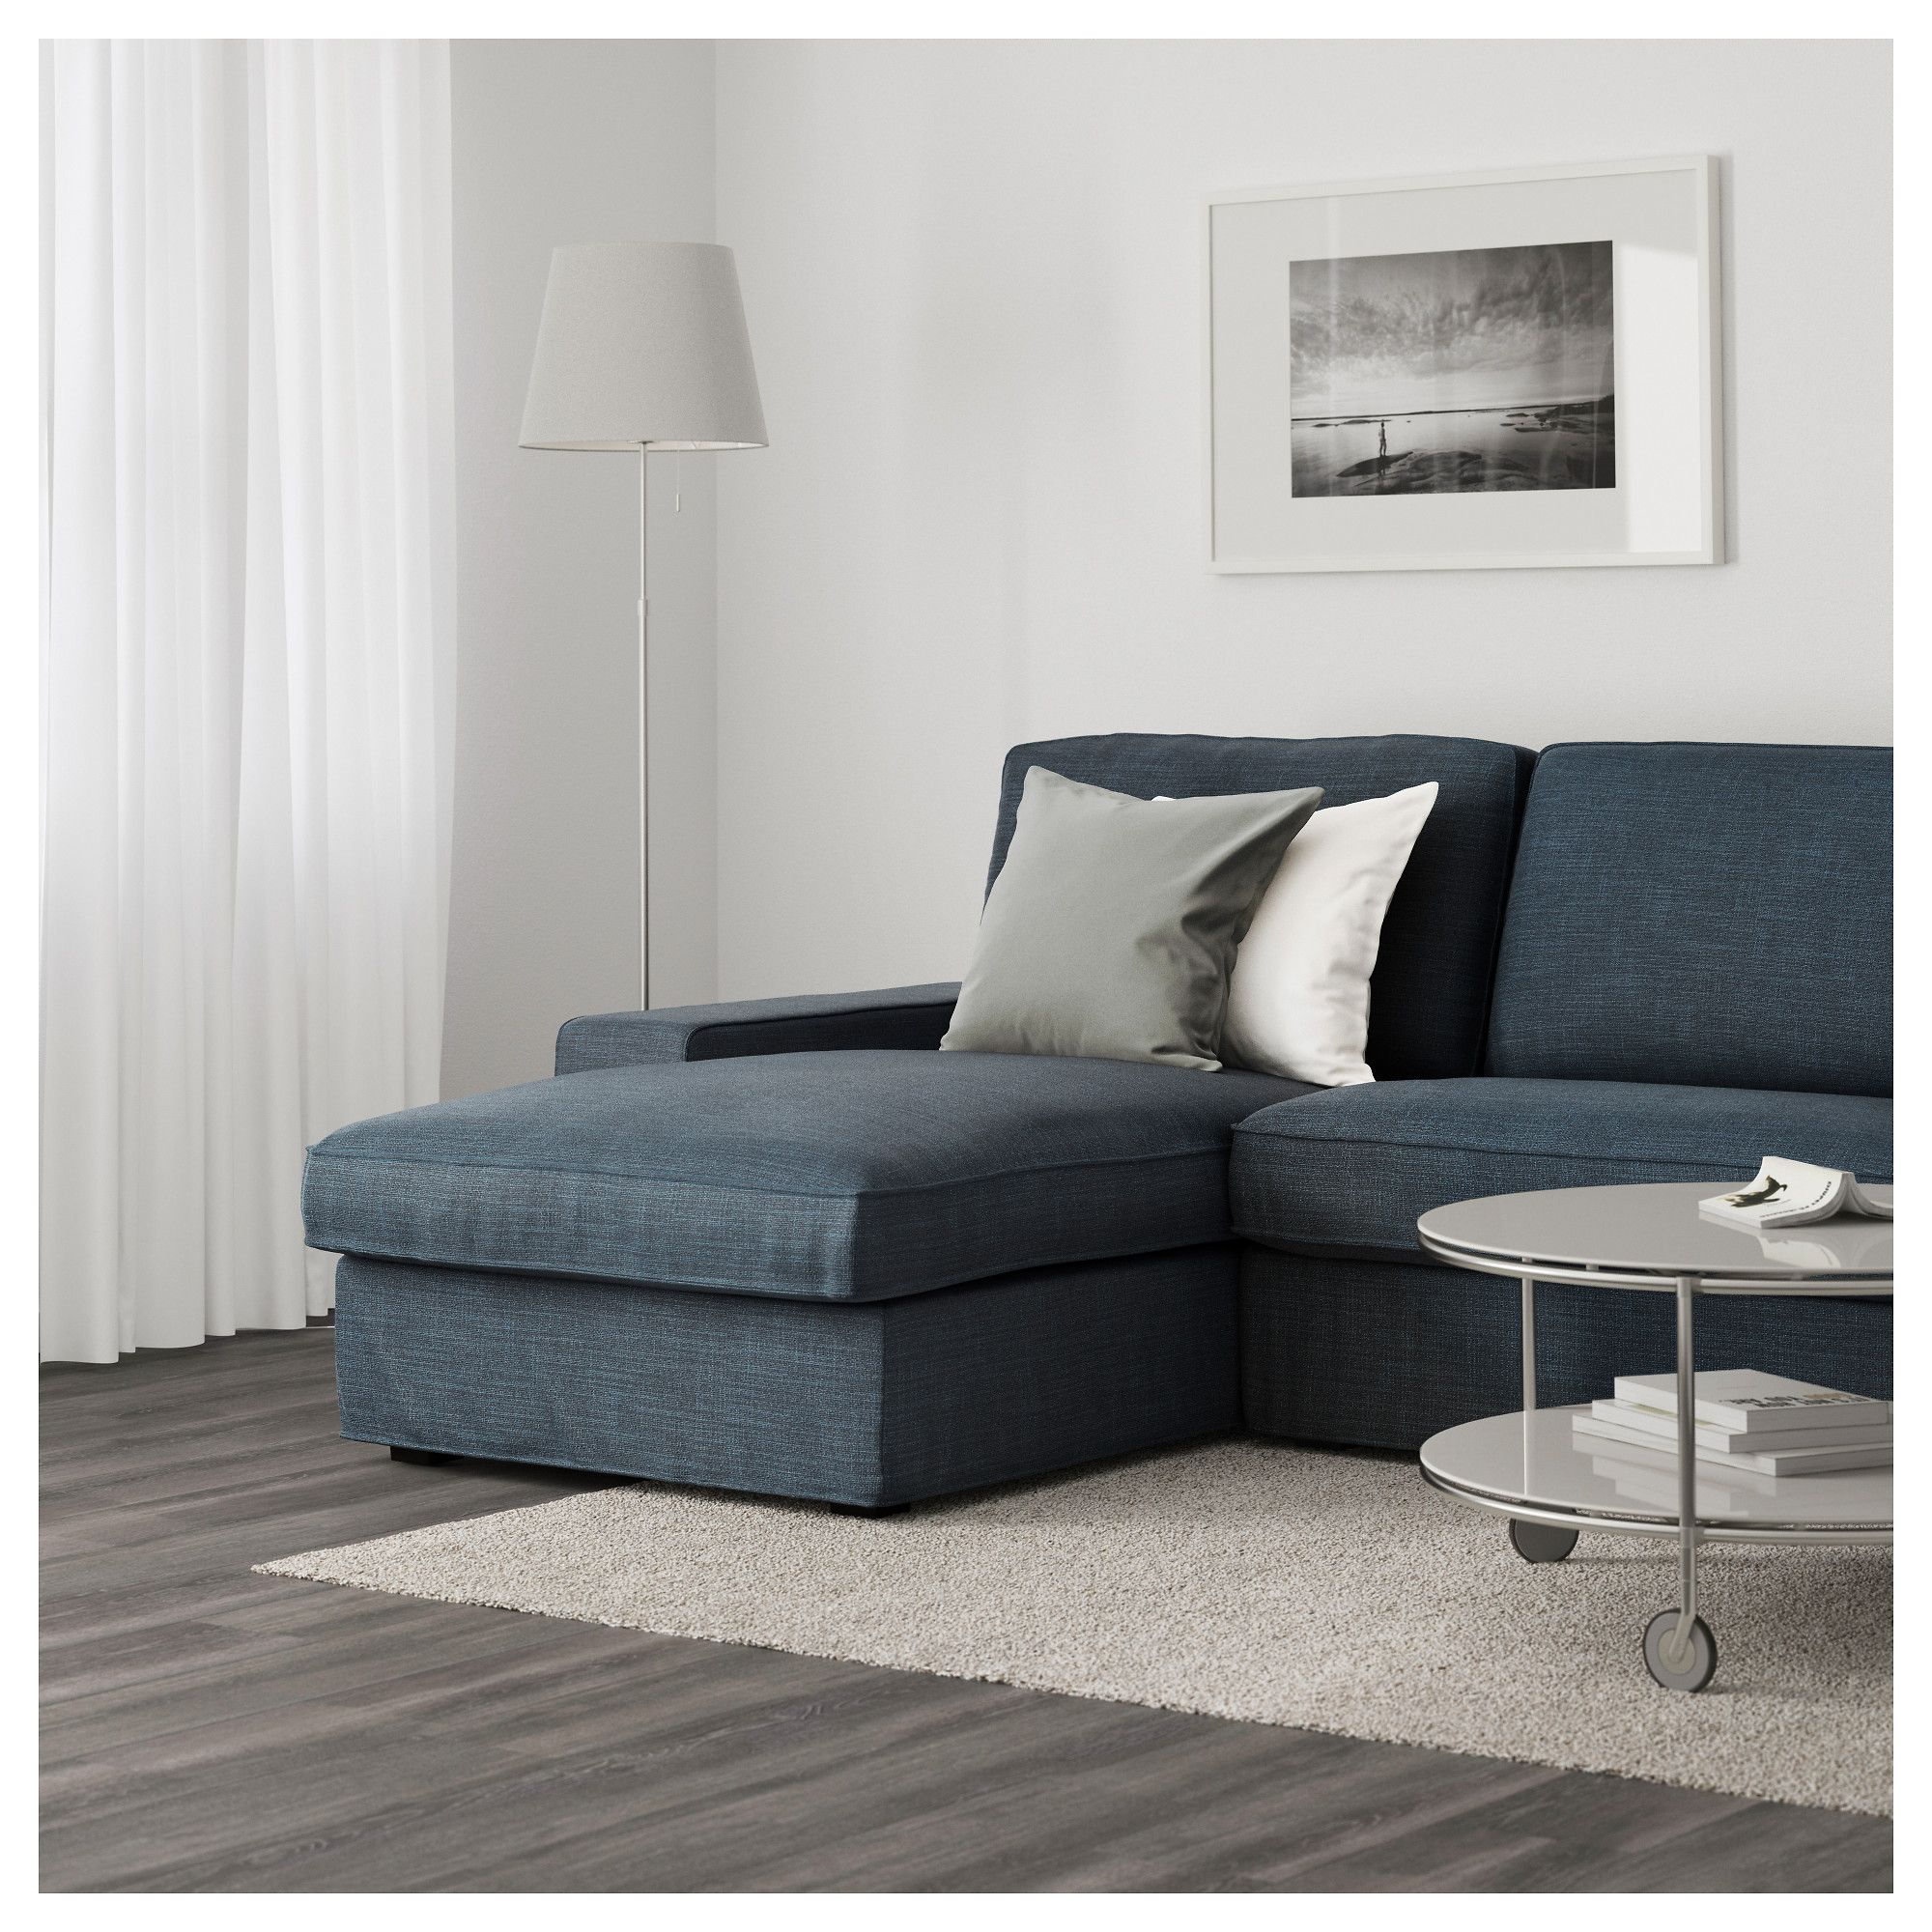 Surprising Ikea Kivik Sectional 4 Seat Hillared With Chaise Dark Beatyapartments Chair Design Images Beatyapartmentscom